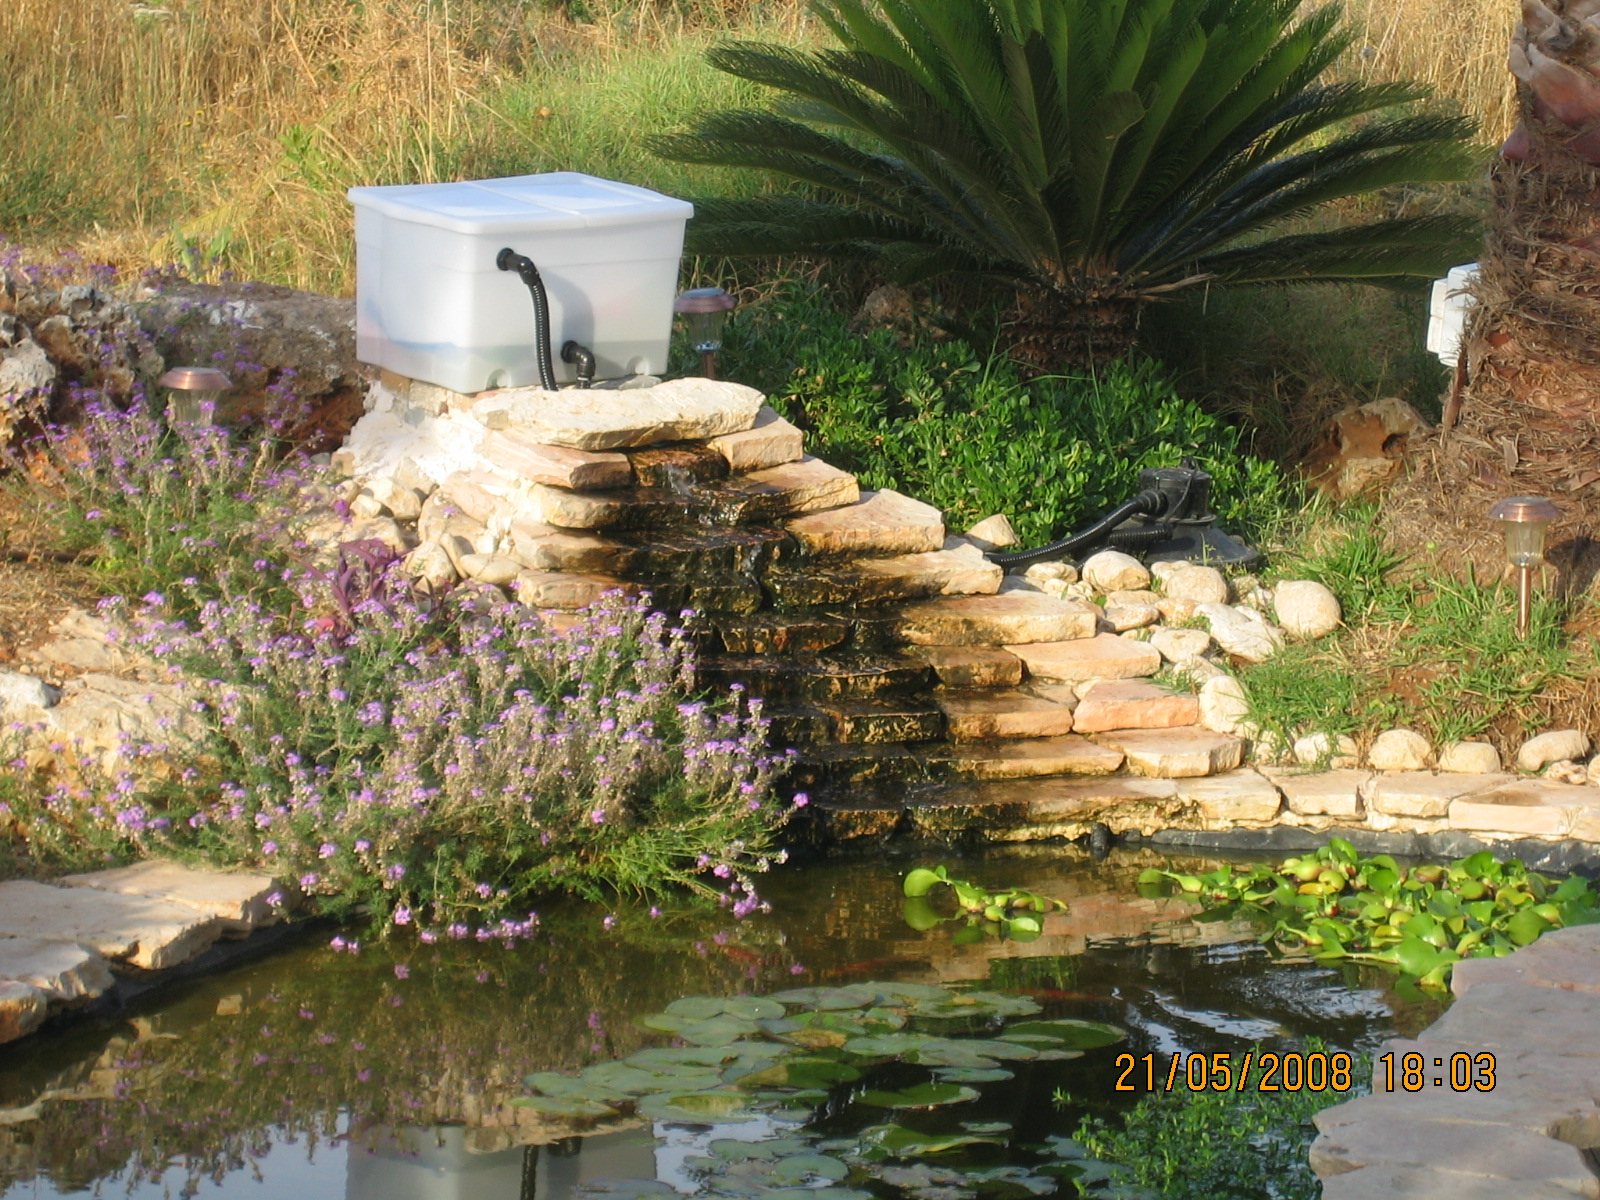 Diy how to build a gravitational filter for a koi pond for Making a koi pond